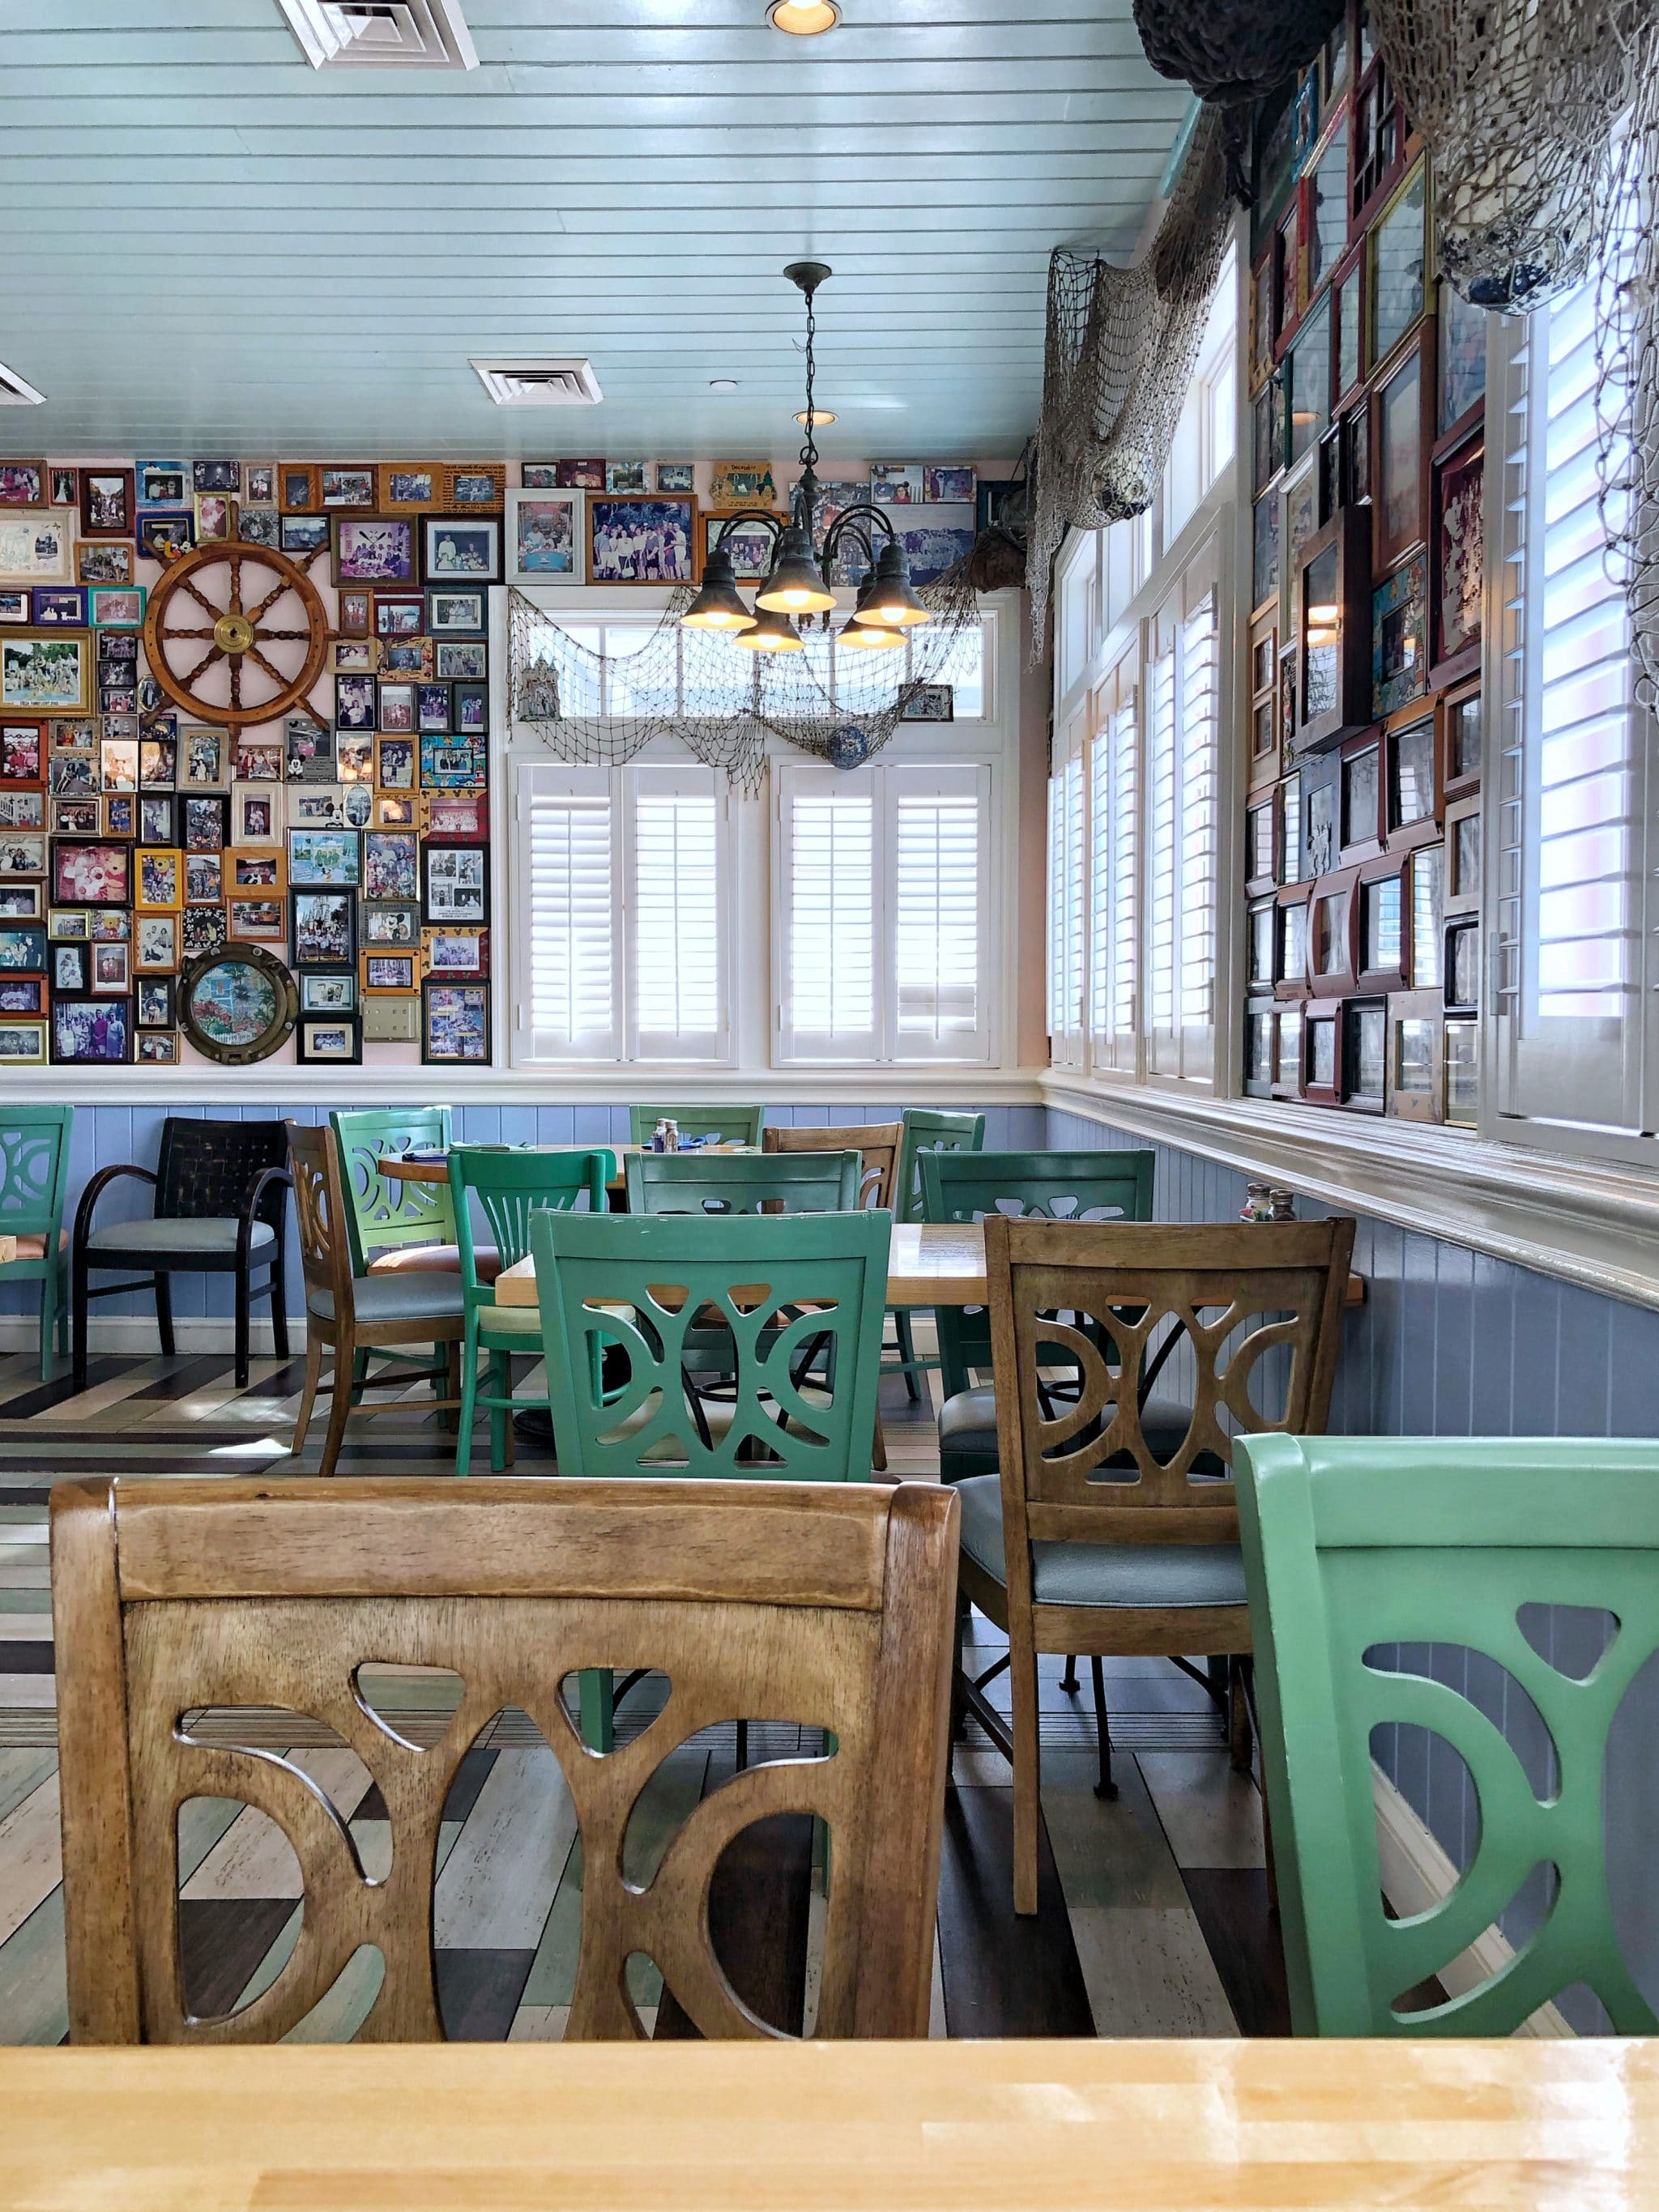 Olivia's Cafe Vegan Review at Disney's Old Key West Resort in Walt Disney World